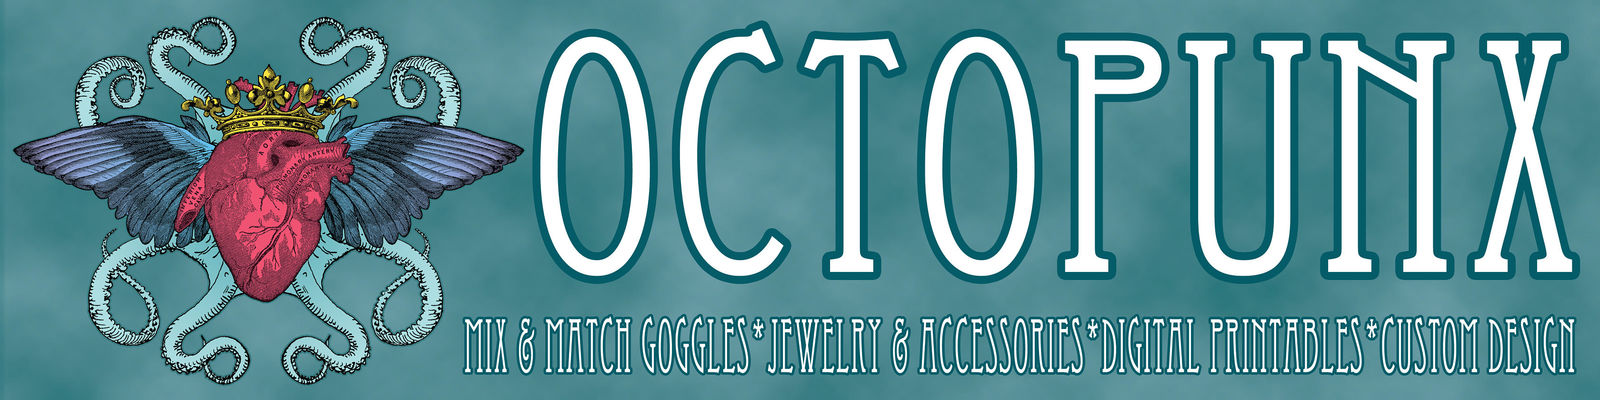 Octapunx: mix & match goggles, jewelry, accessories, digital printables, custom design.